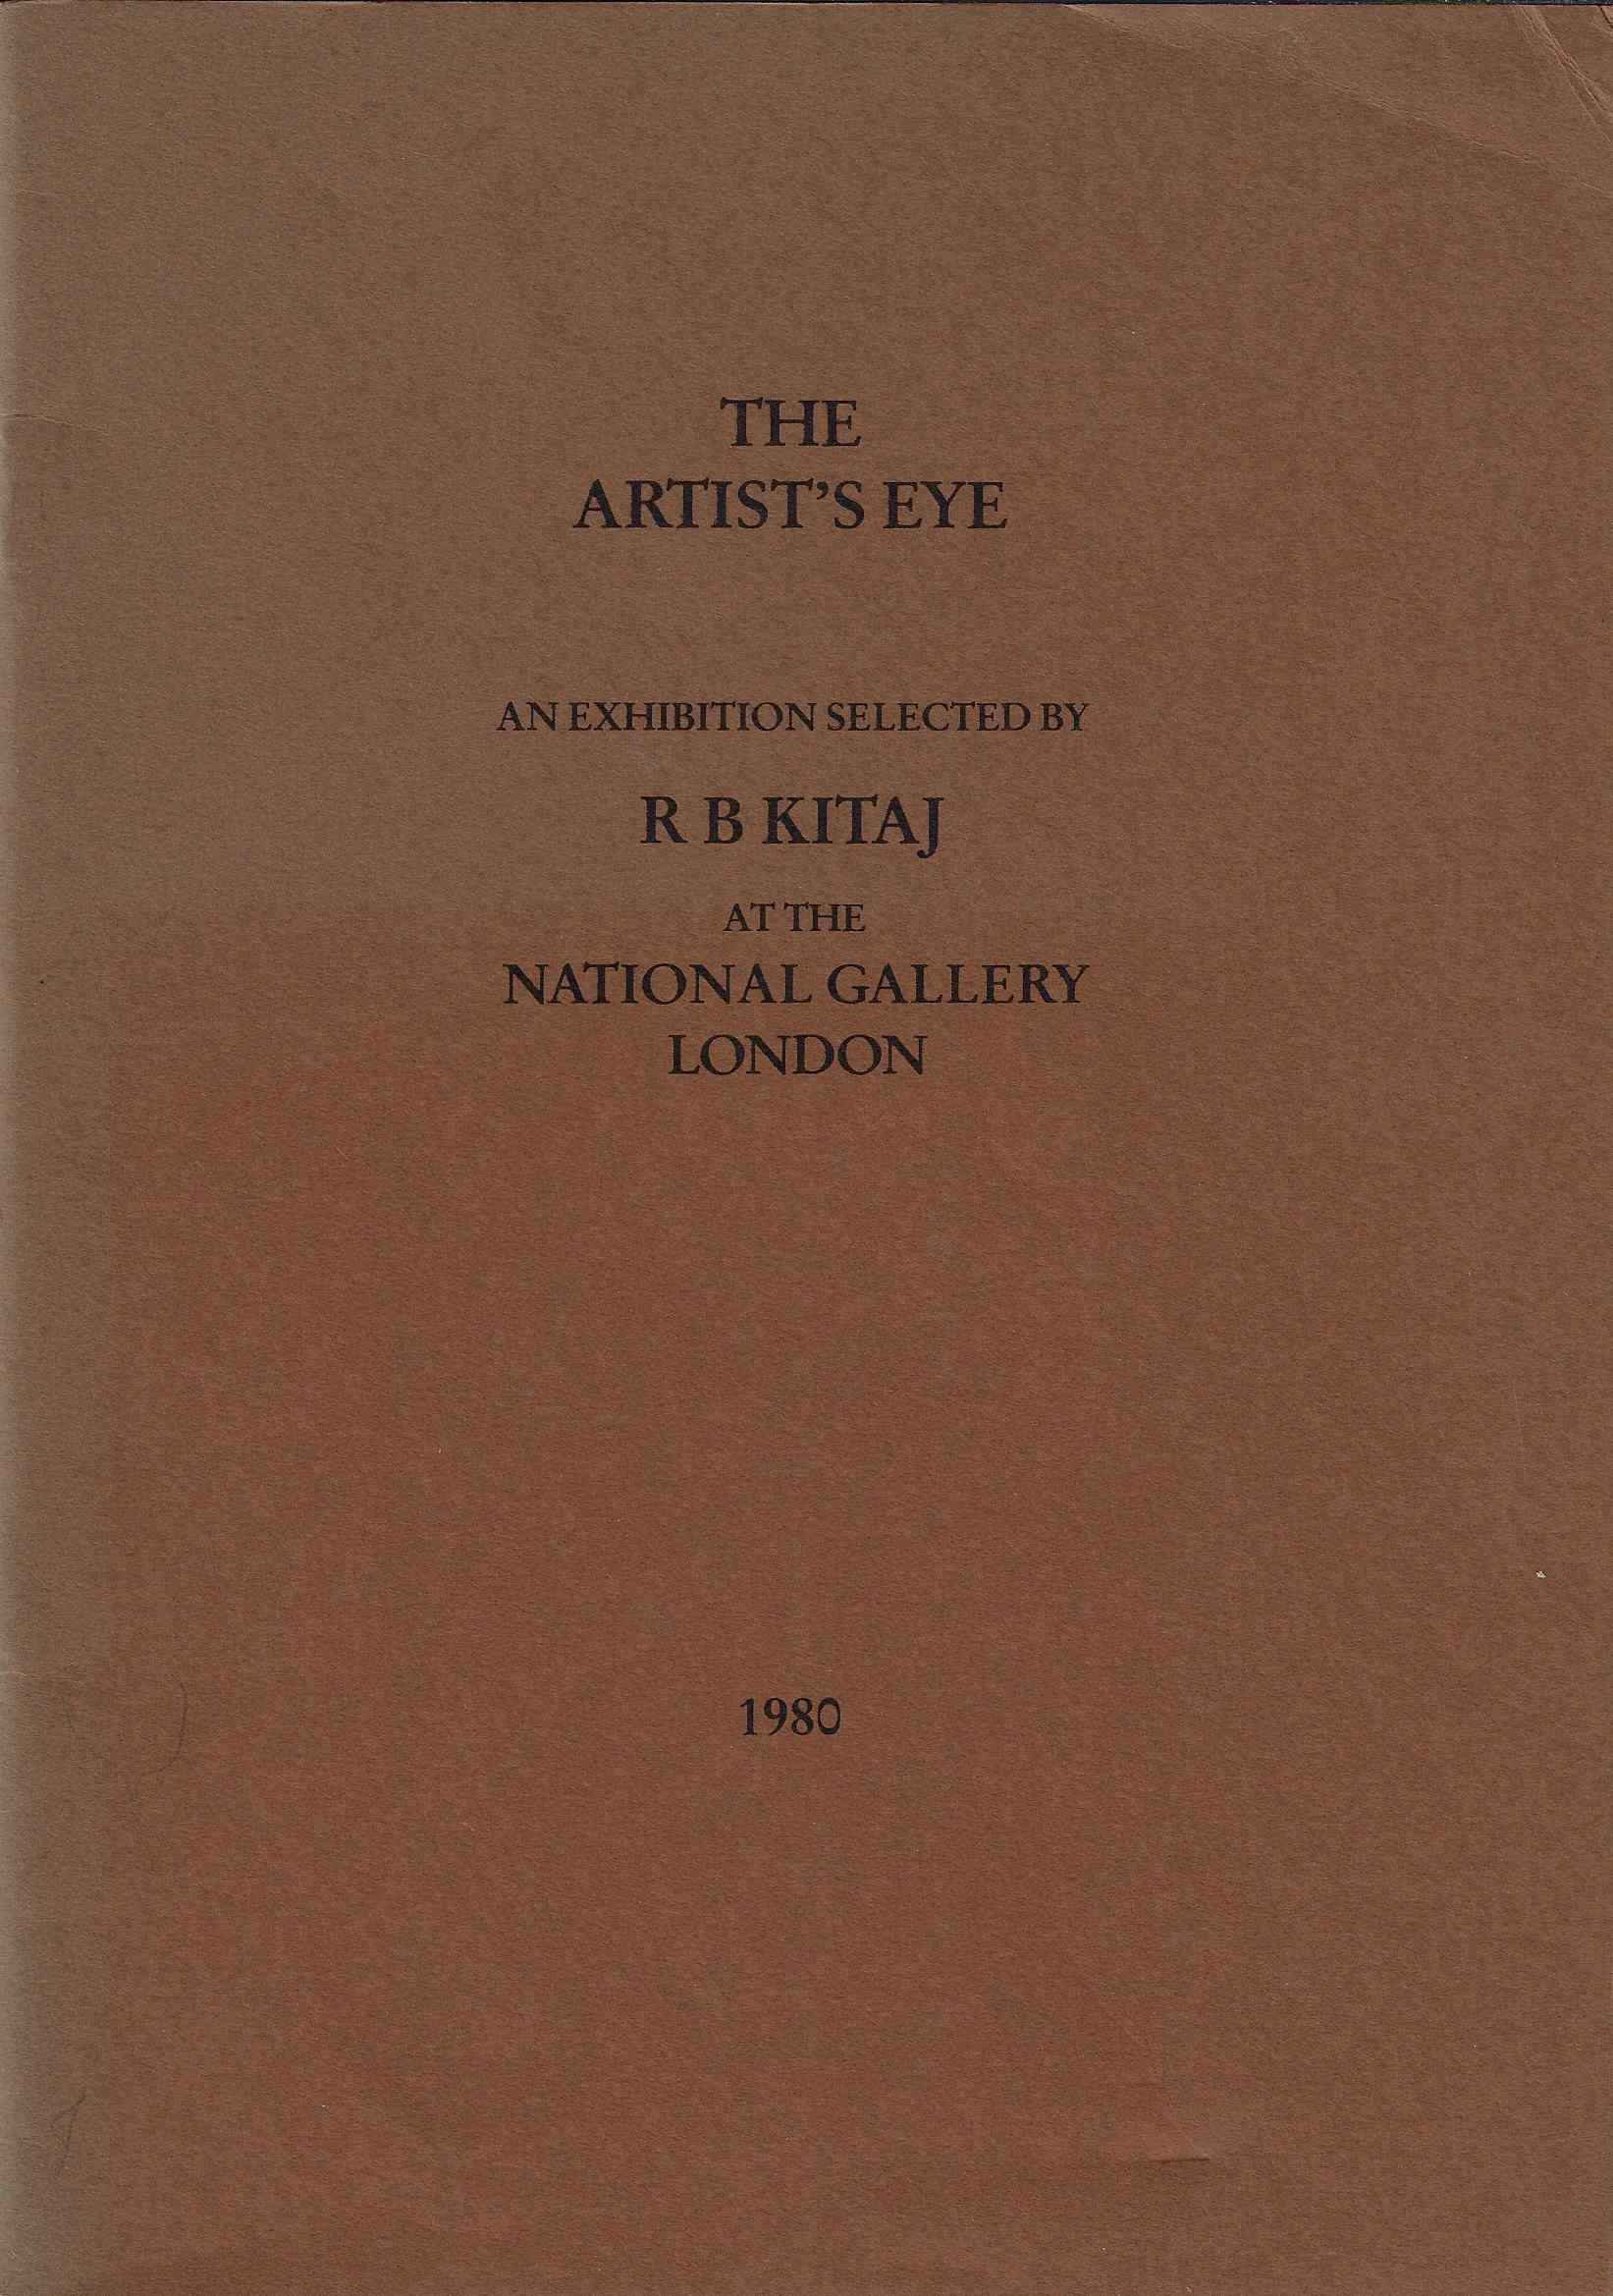 Image for The Artist's Eye An Exhibition Selected by R B Kitaj At the National Gallery London 21 May - 21 July 1980